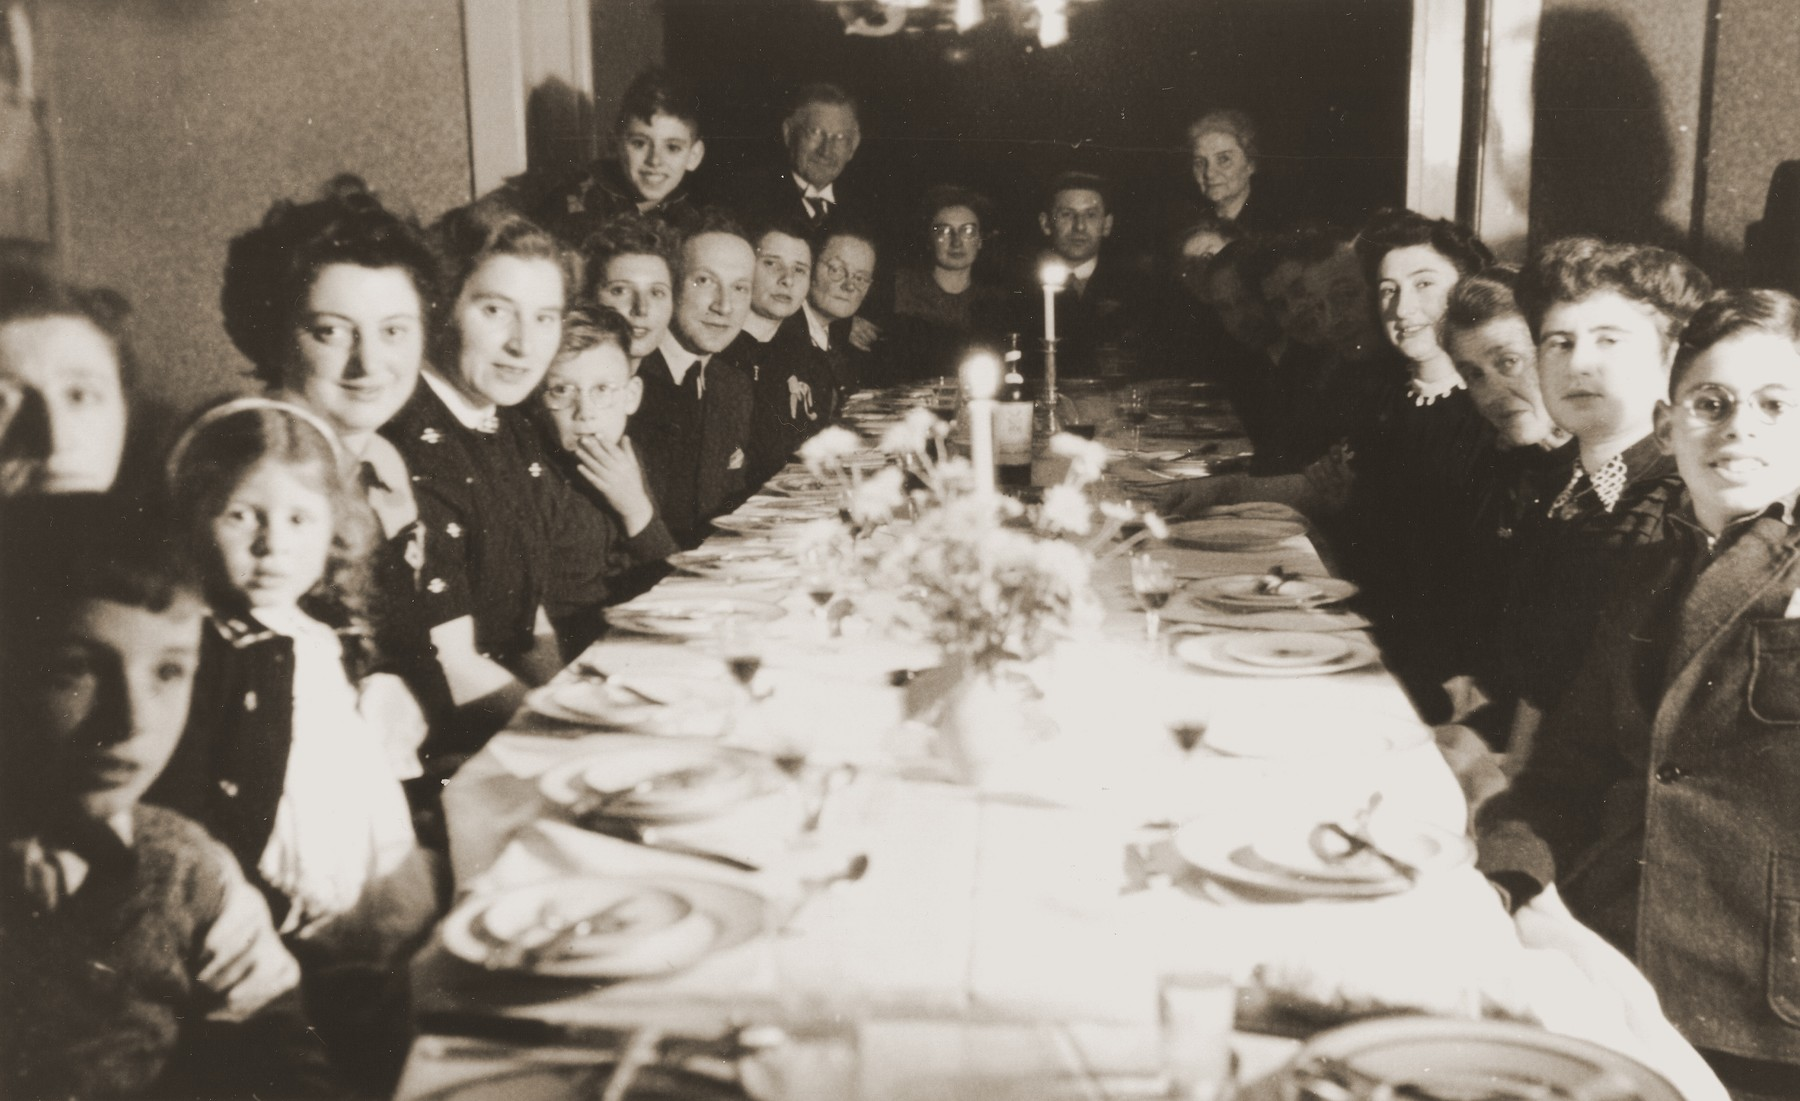 Engagement party for Julius Jacob Zion and Nora de Jong at the de Jong home in Enschede.  Among those pictured are the bride and groom (at the head of the table); the bride's father and mother (on either side of the bride and groom); Bep Meijer (fourth from the front on the right side); Frieda Zion (second from the front on the right side); and Betty Rosenbaum (the child second from the front on the left side).